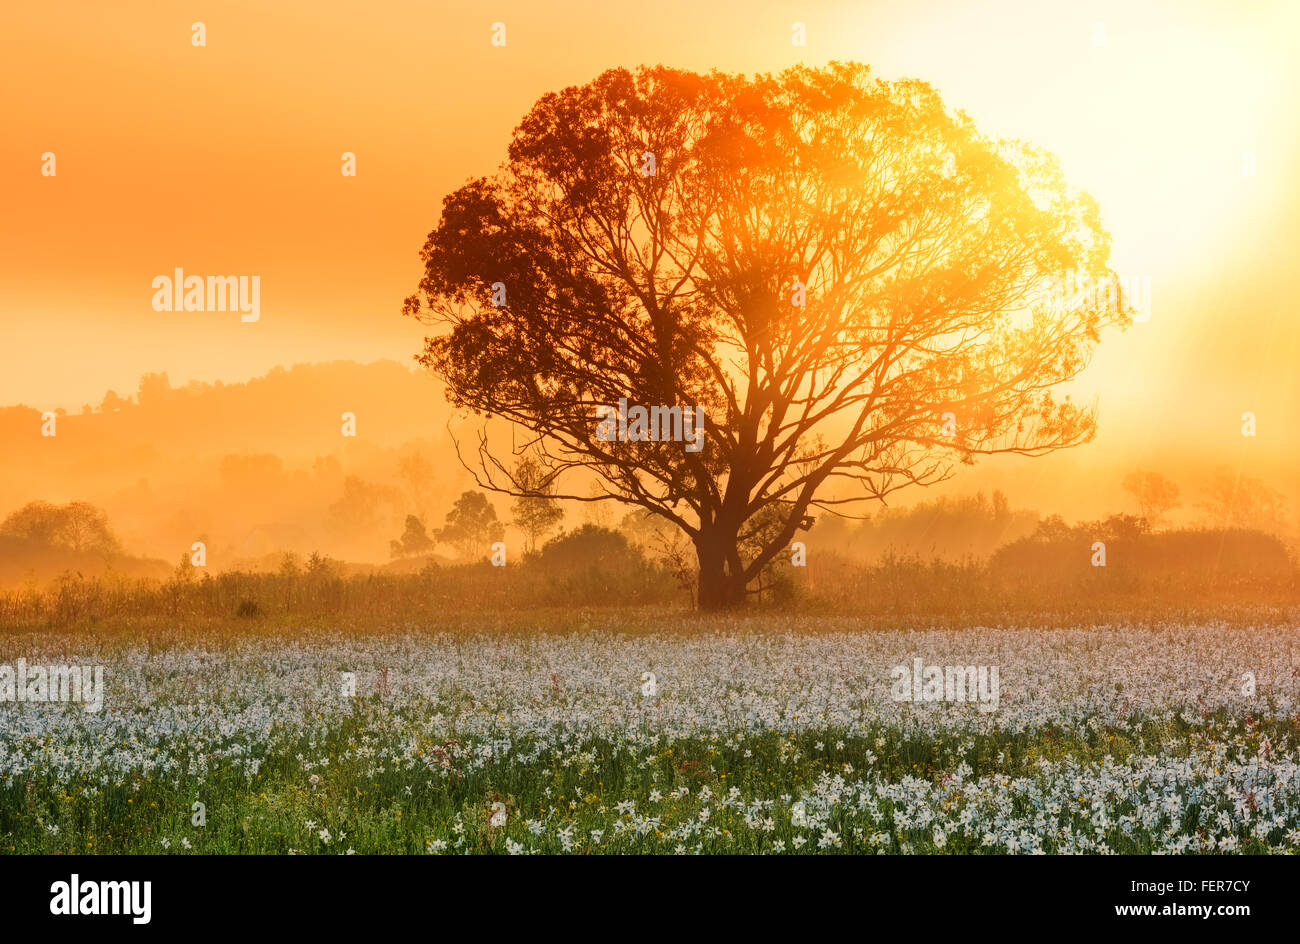 Beautiful sunny landscape with single tree and the valley of white beautiful sunny landscape with single tree and the valley of white flowers daffodils nature floral background izmirmasajfo